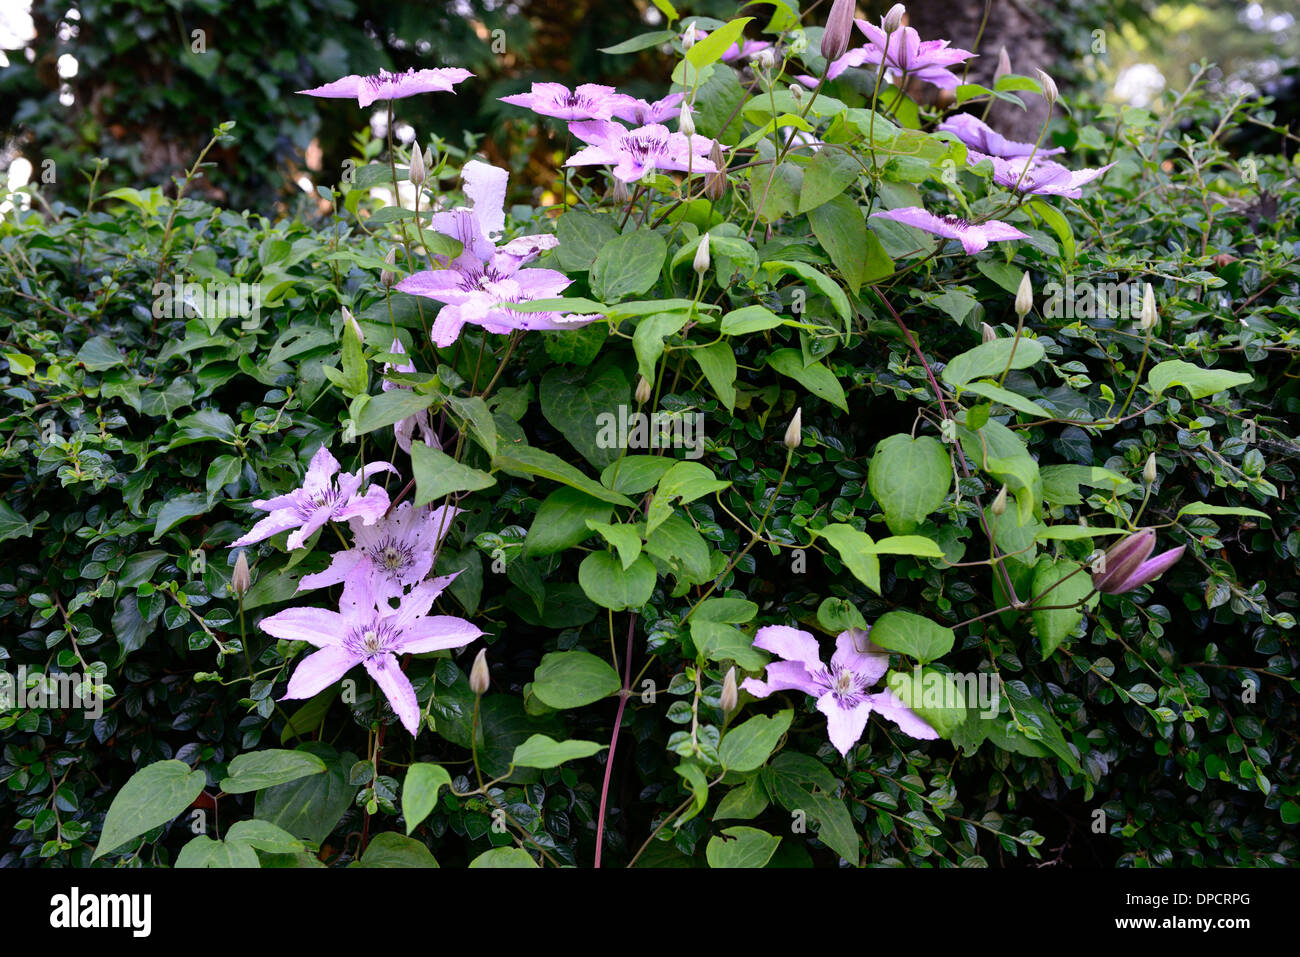 clematis hagley hybrid vigorous climber climbing climb pink flower flowering blooming plant cover wall - Stock Image